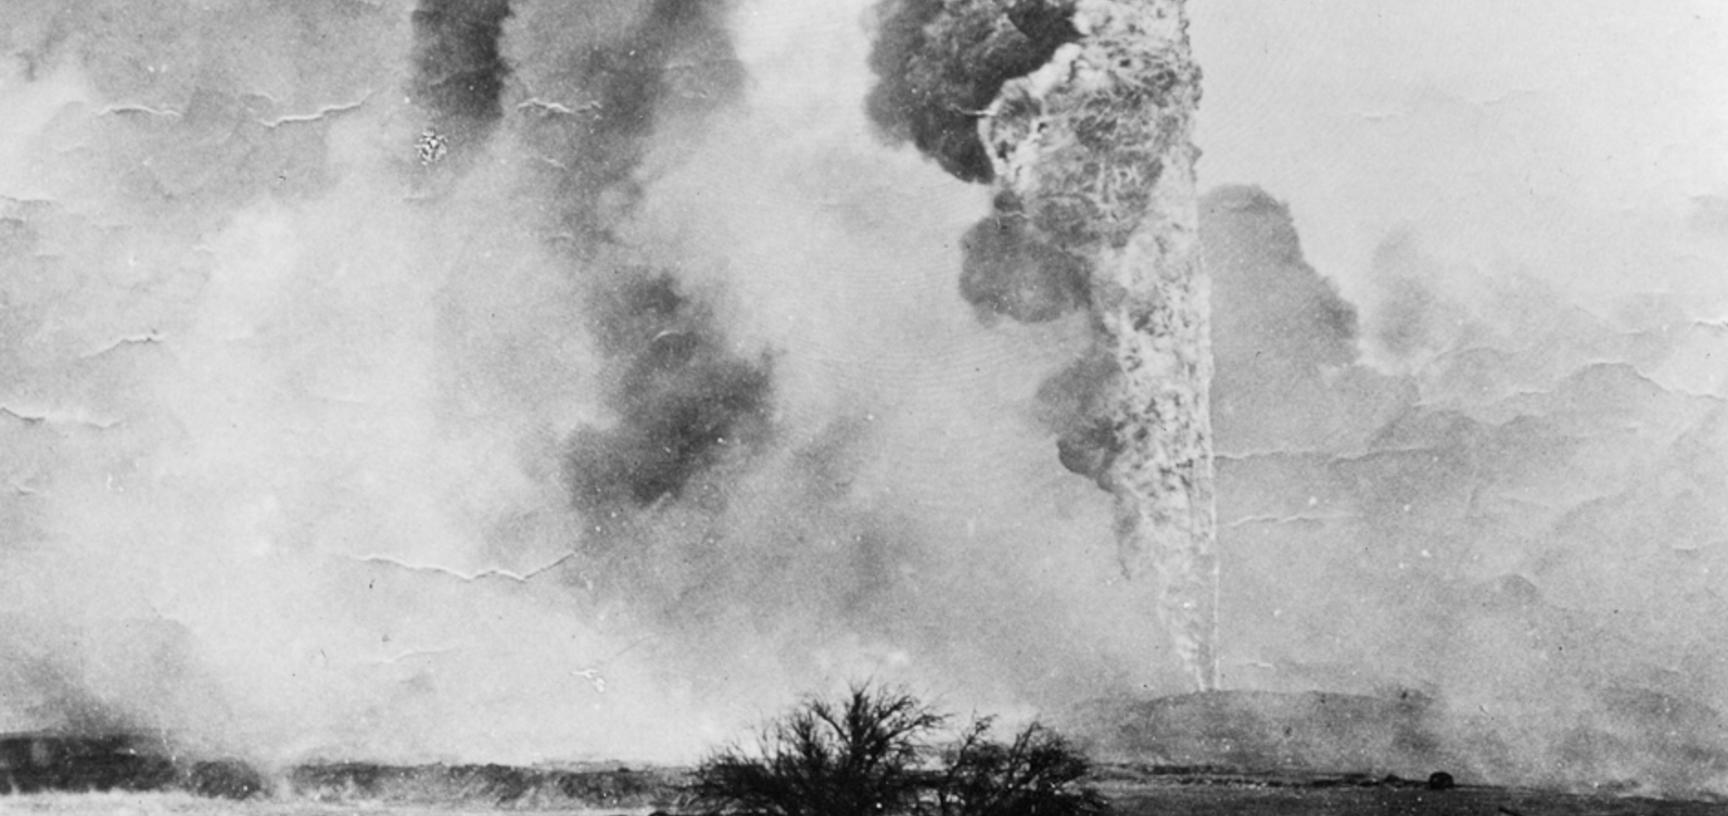 Oil spout on fire at Baku, now the capital of Azerbaijan, which was the centre of frenzied oil speculation in the 1890s.